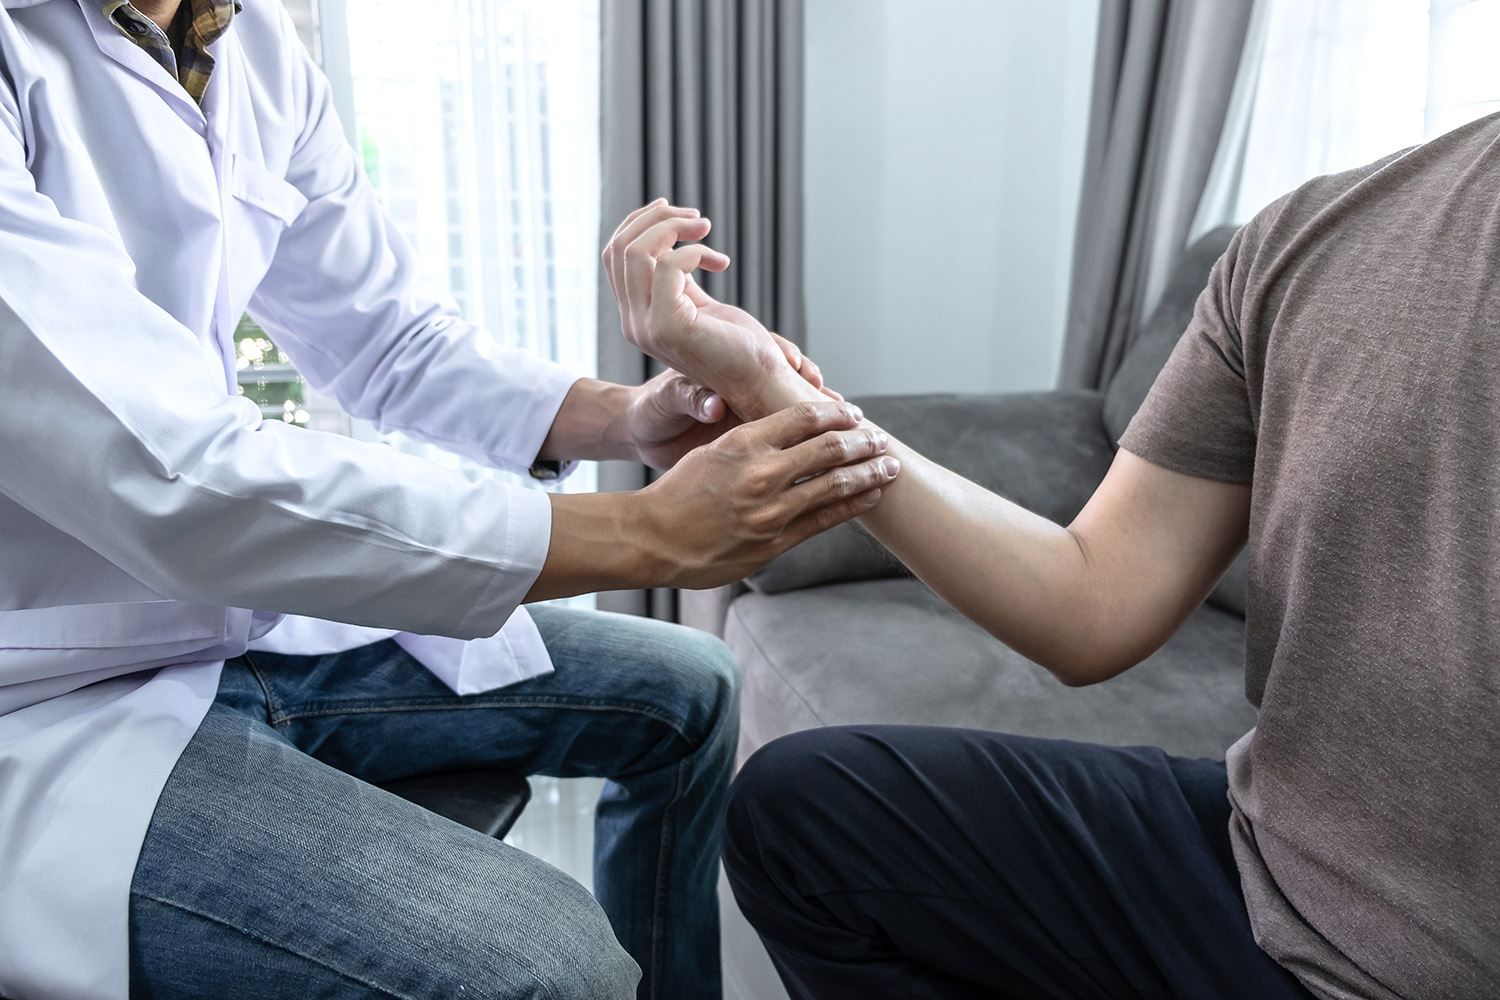 Physical Therapy for Auto Accident Injuries - Call 1-855-58-WRECK (97325)